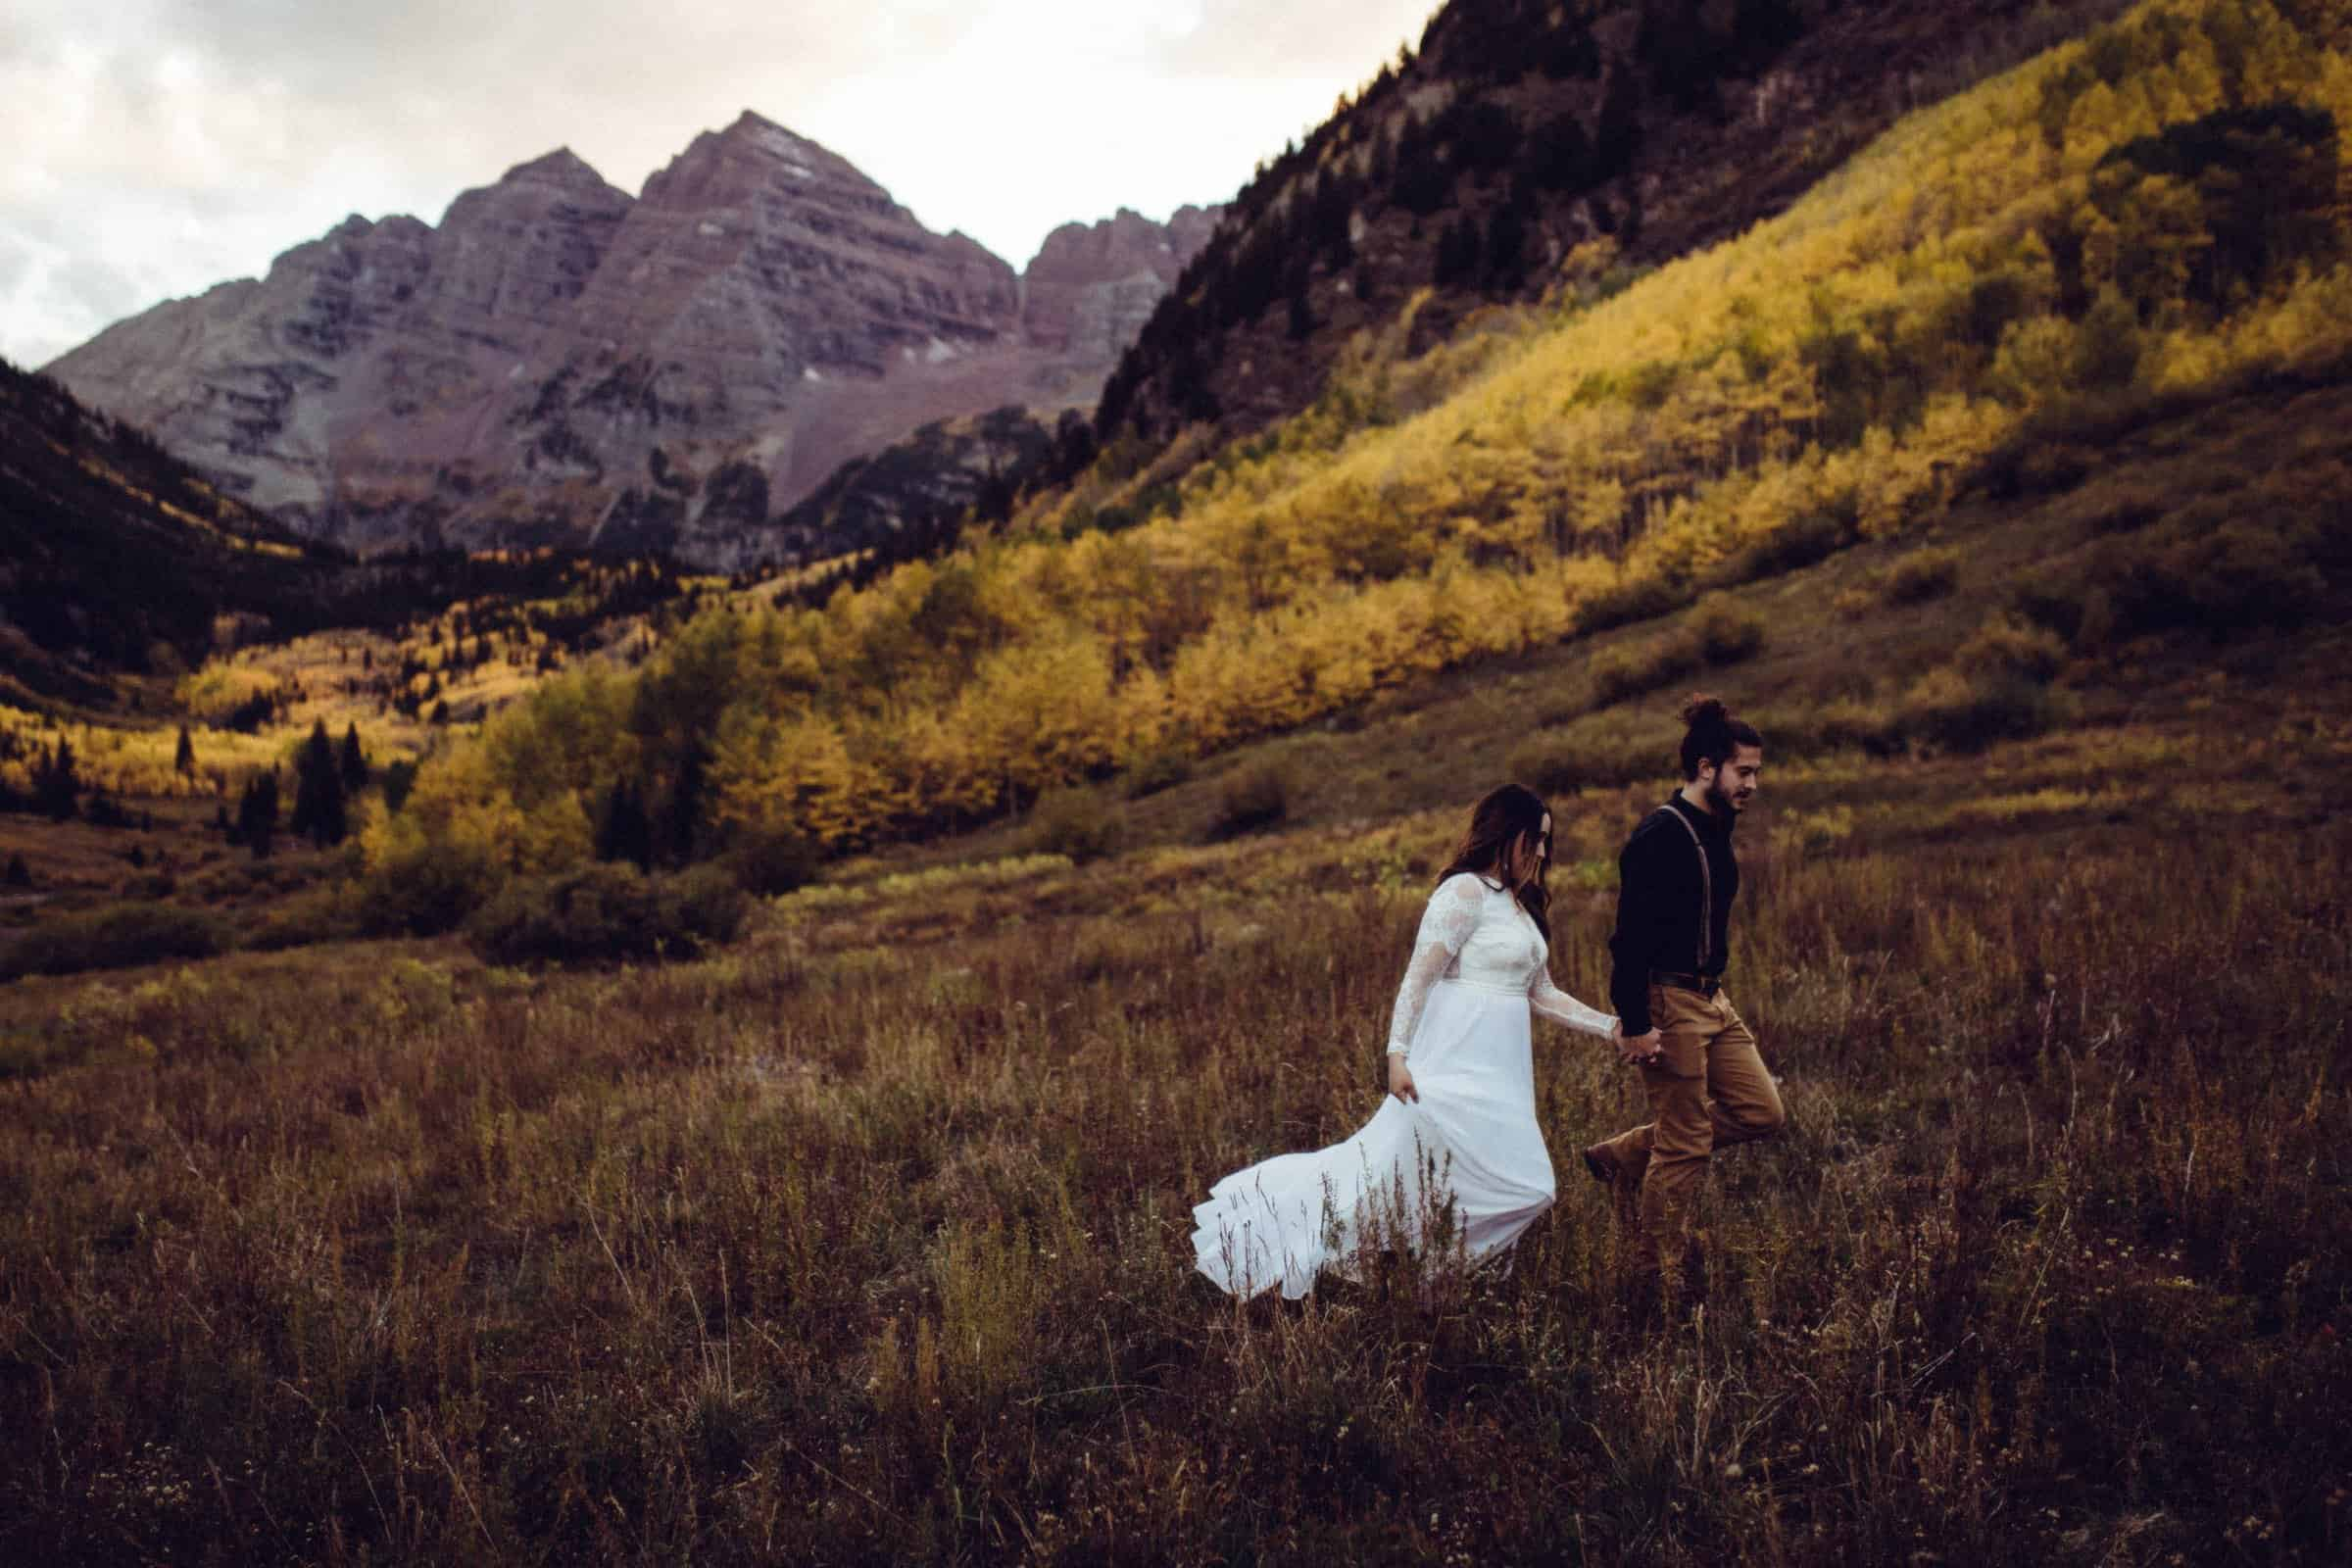 bride and groom walking hand in hand through an open field in the mountains surrounded by fall foliage